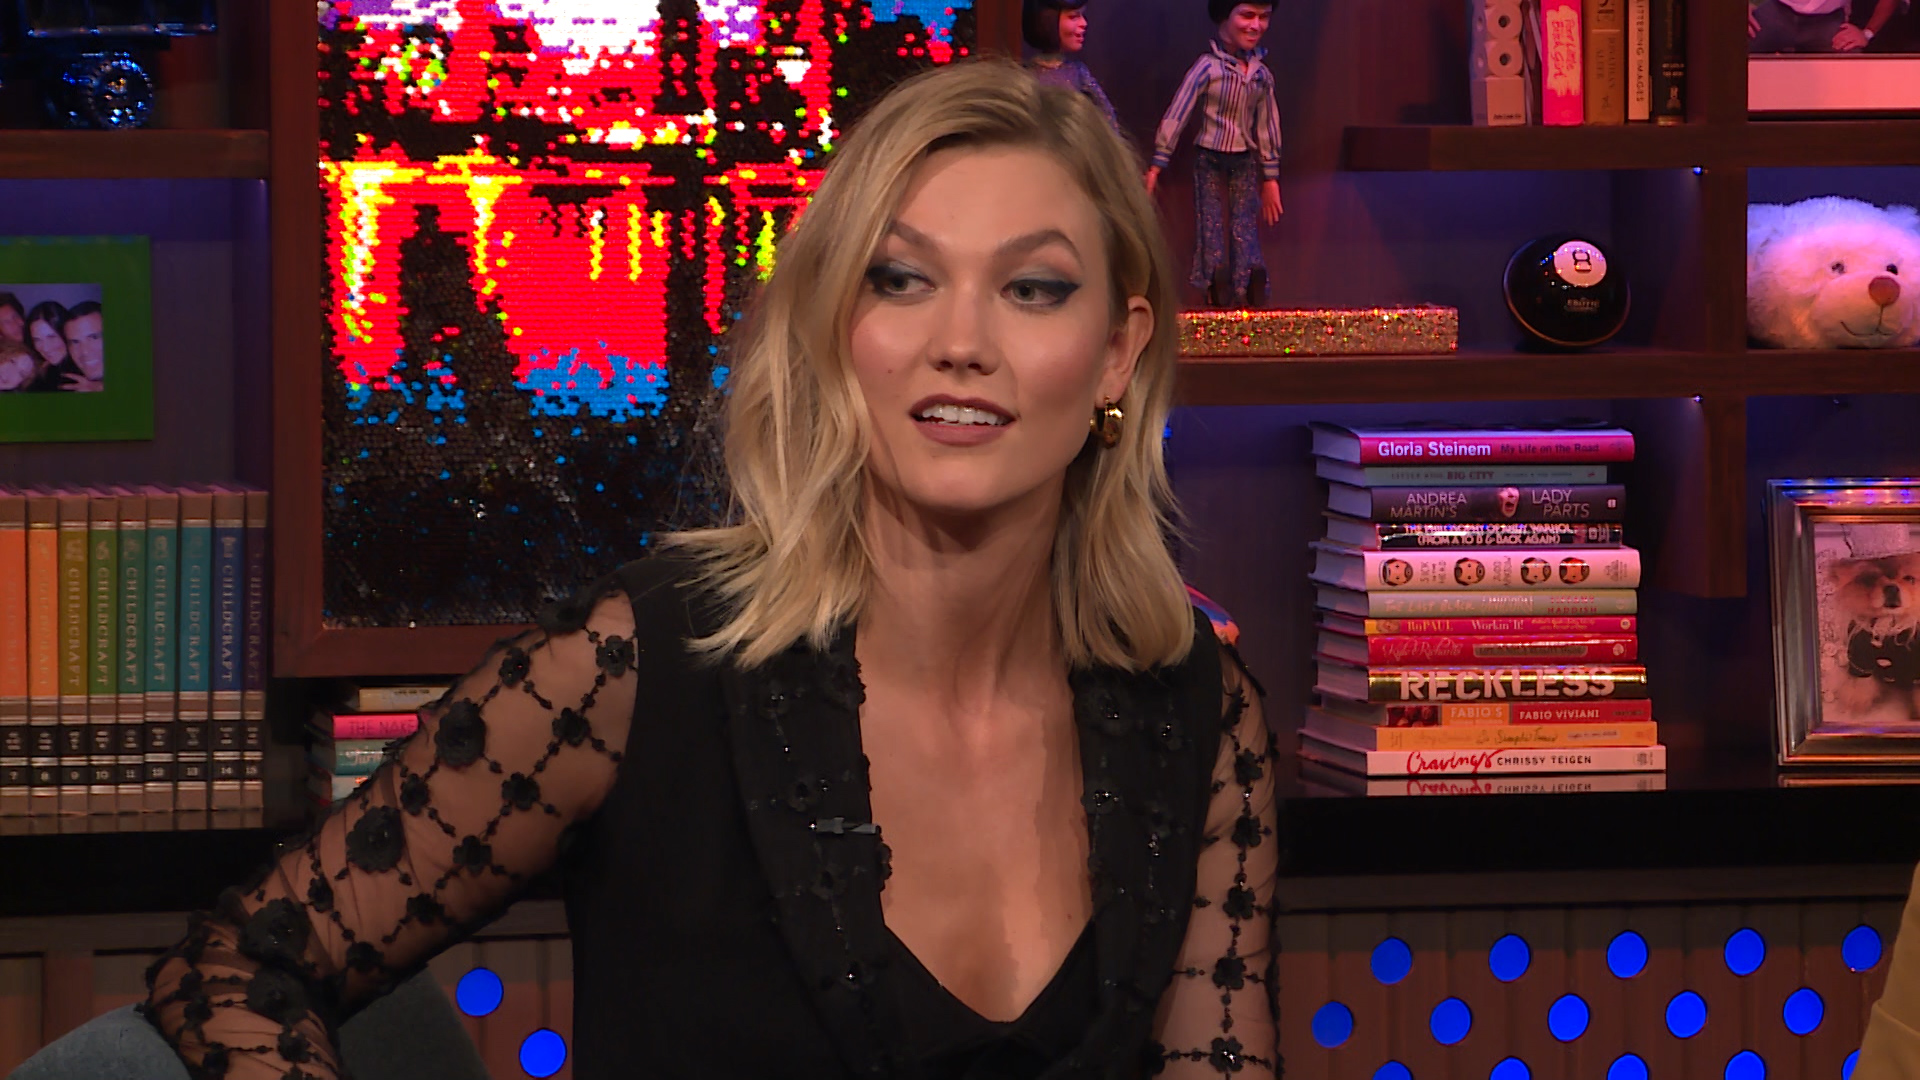 Taylor Swift Elle Essay About Girl Squad Karlie Kloss Responds The Daily Dish